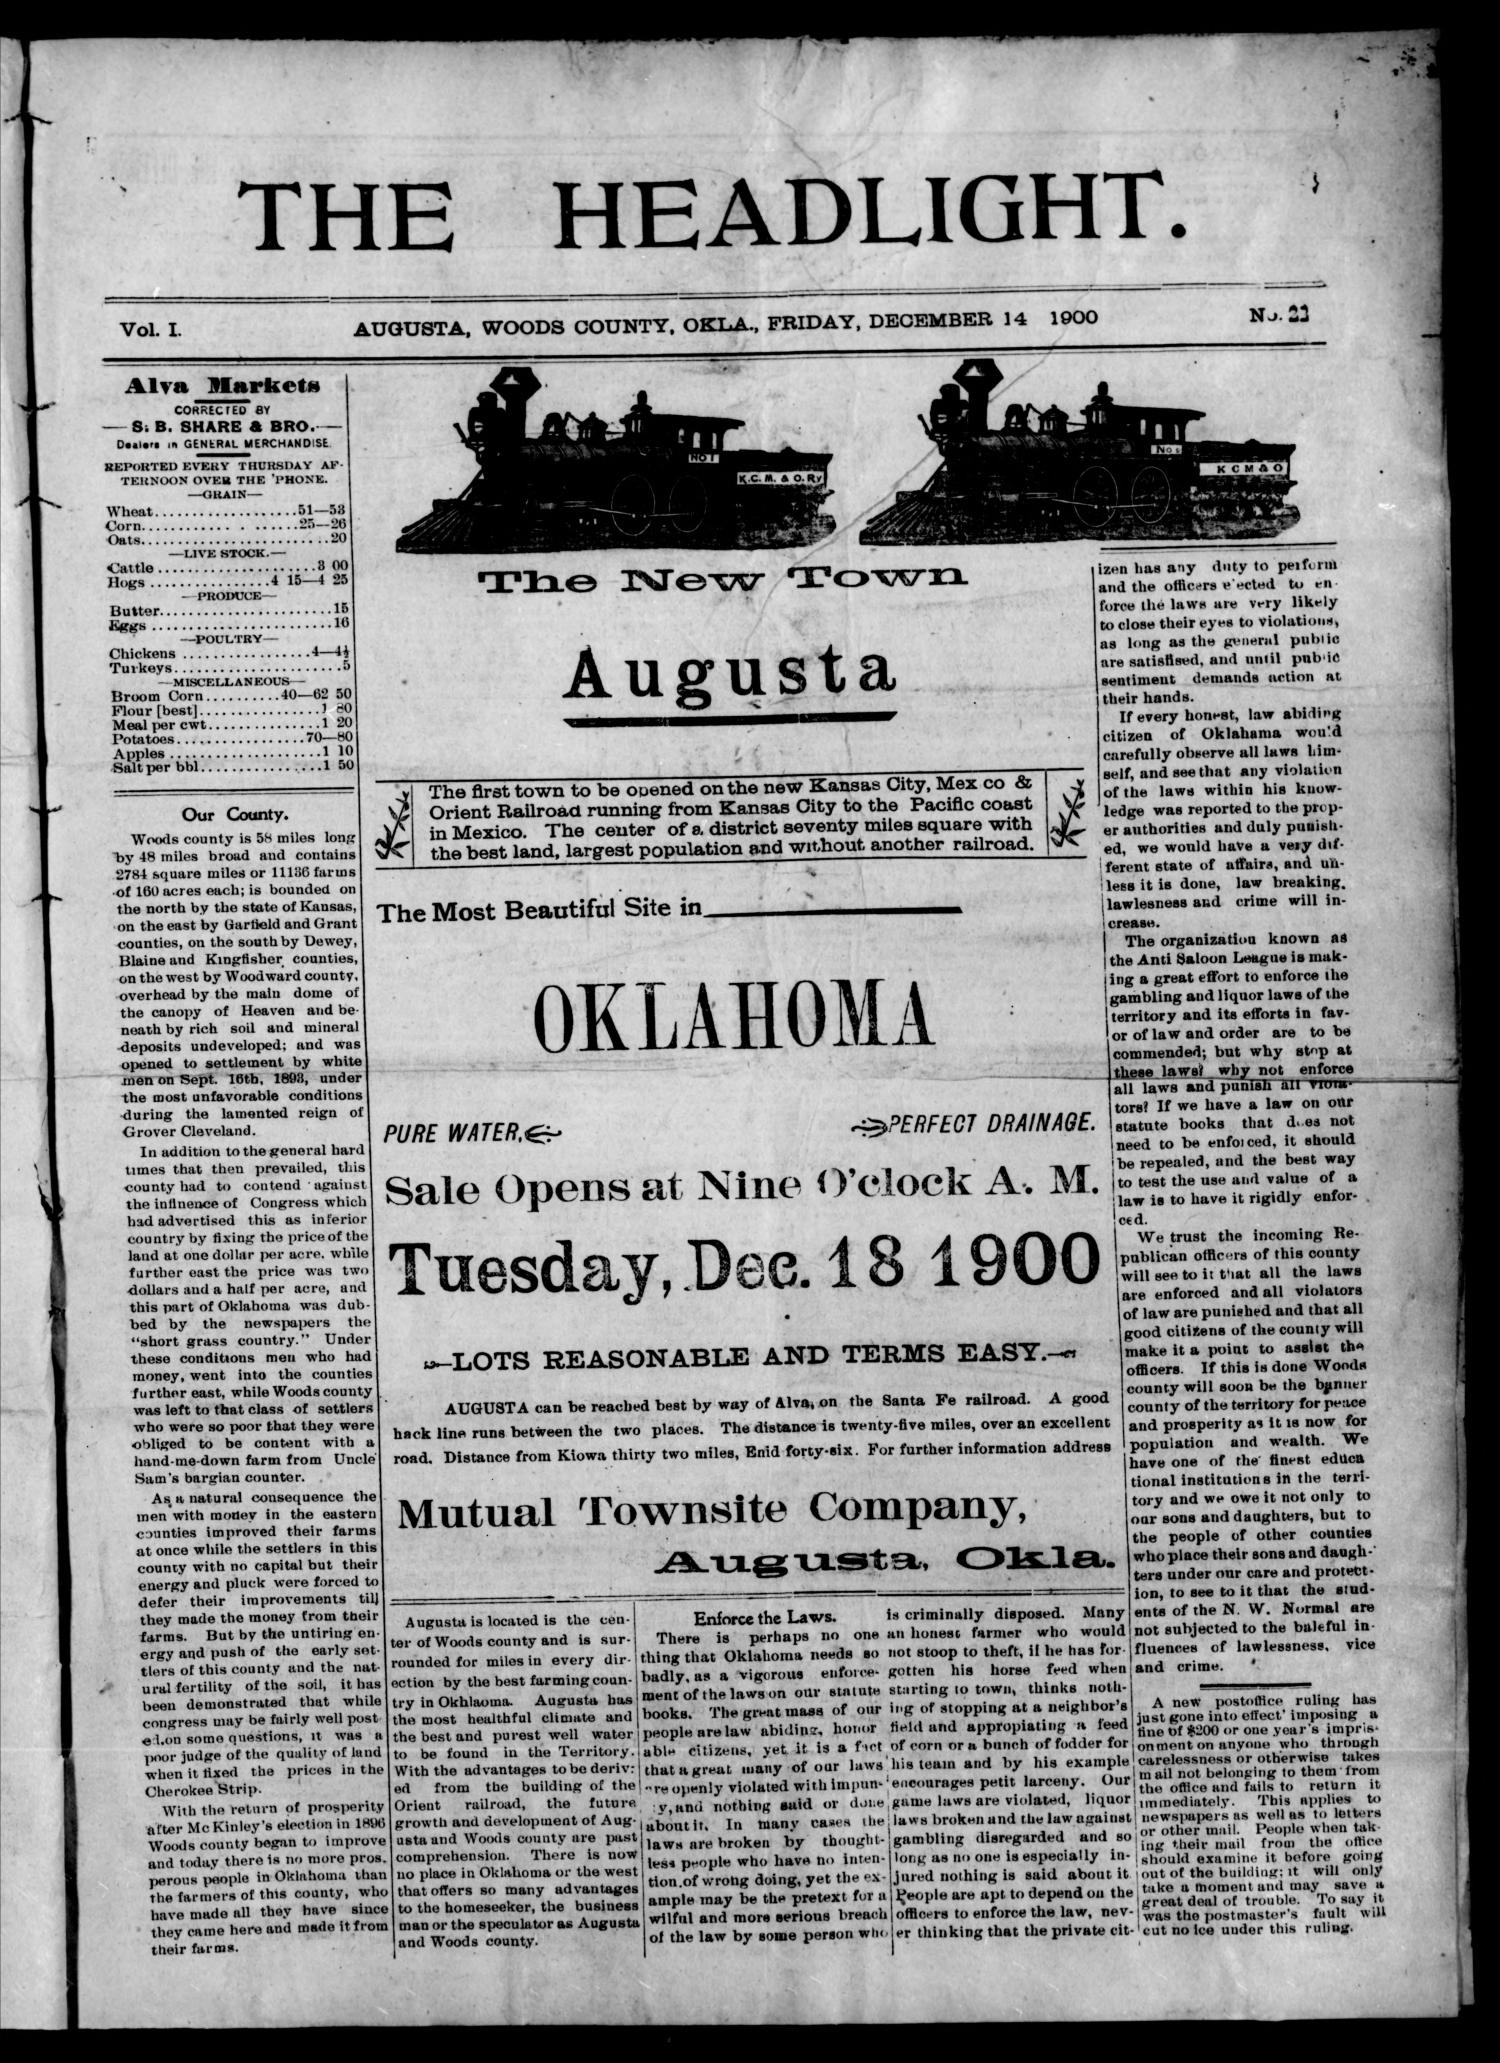 The Headlight. (Augusta, Okla.), Vol. 1, No. 22, Ed. 1 Friday, December 14, 1900                                                                                                      [Sequence #]: 1 of 8